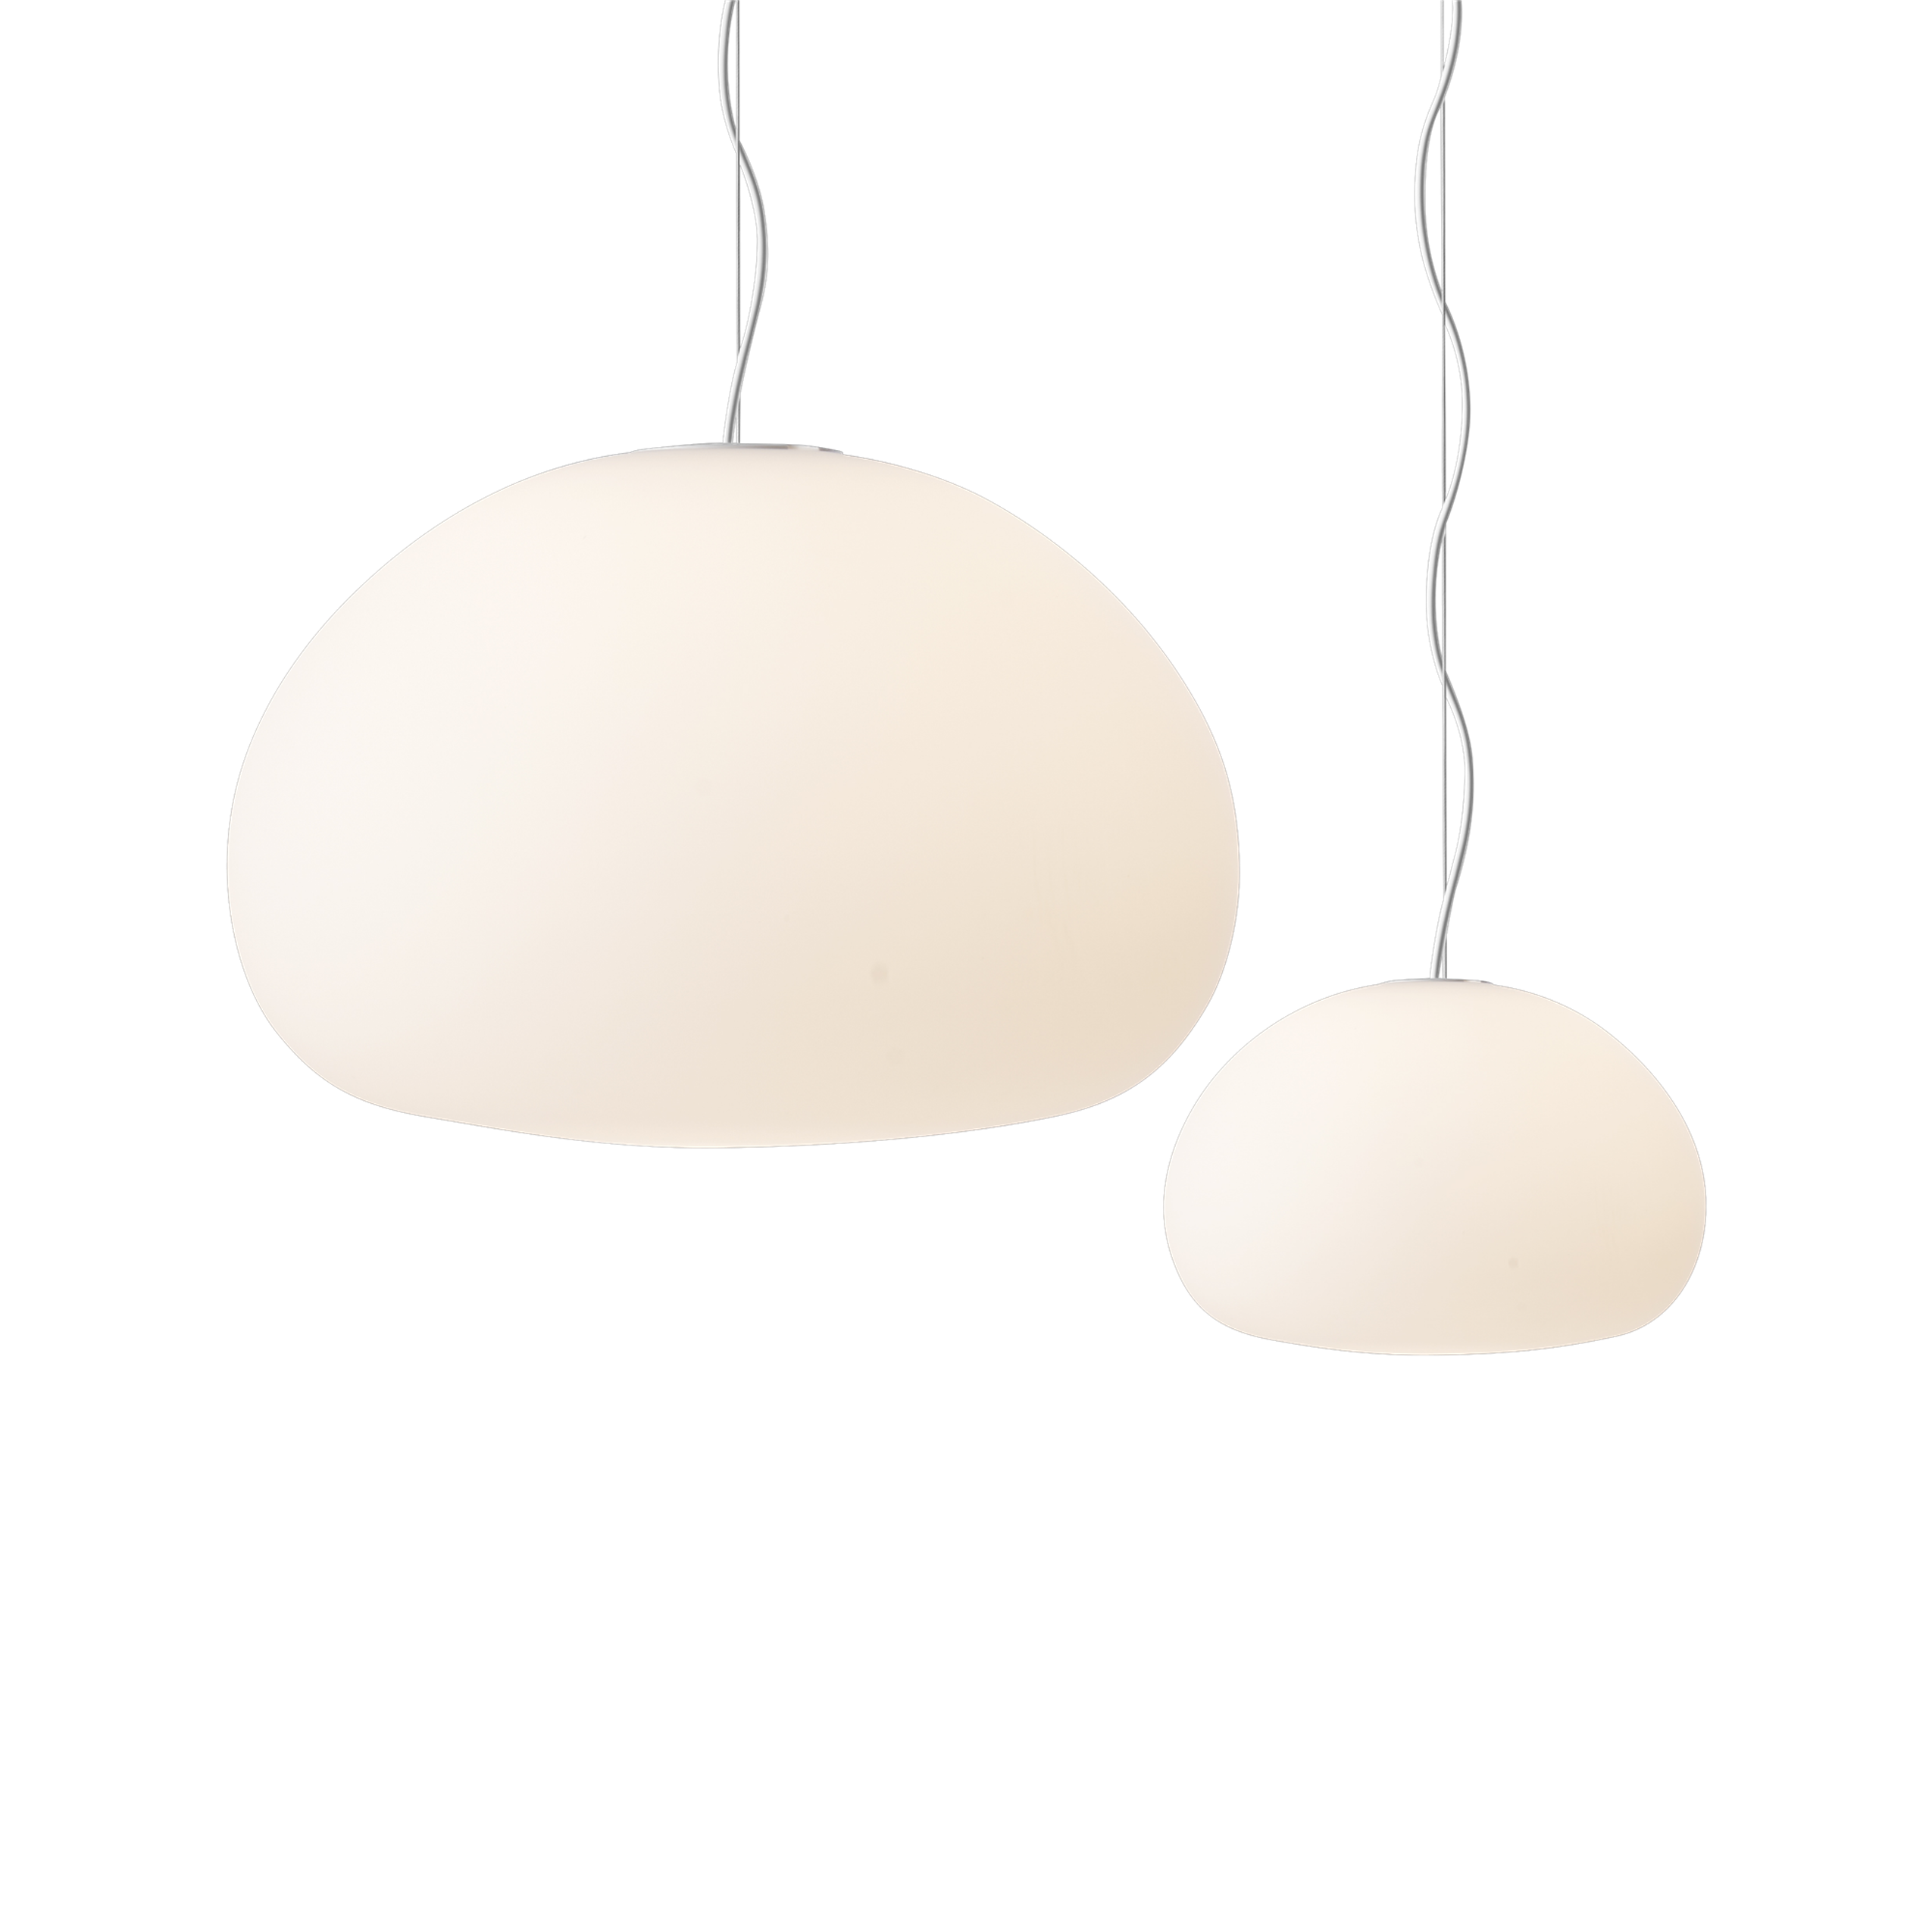 The frosted matte surface of the fluid pendant lamp creates a